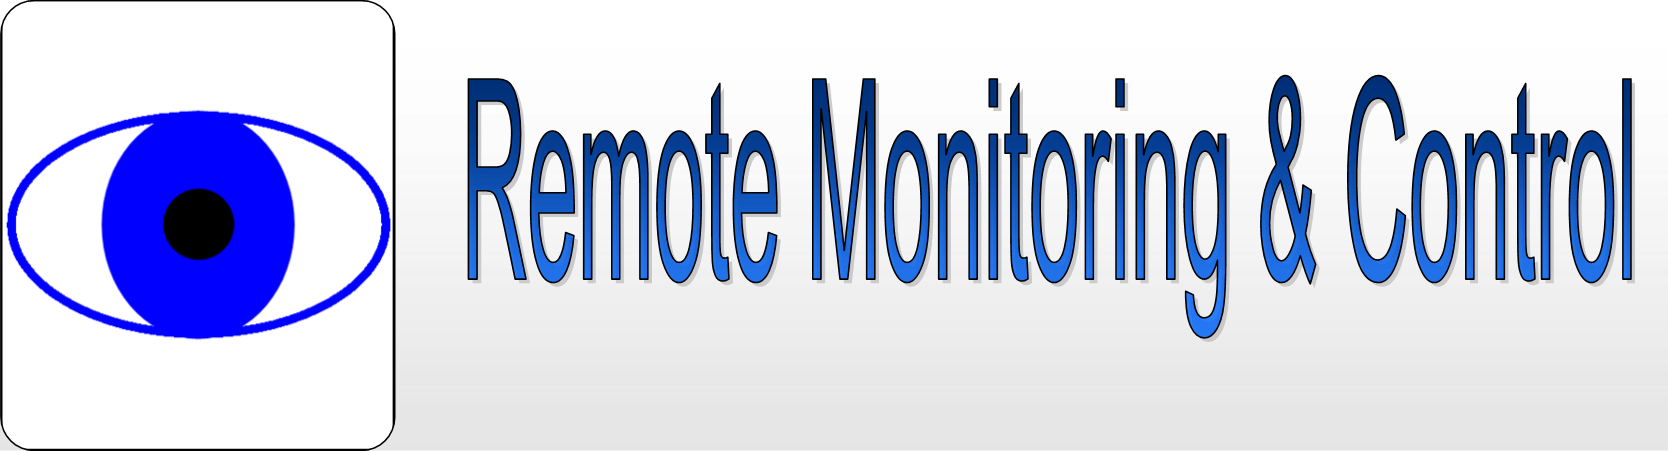 Remote Monitoring & Control